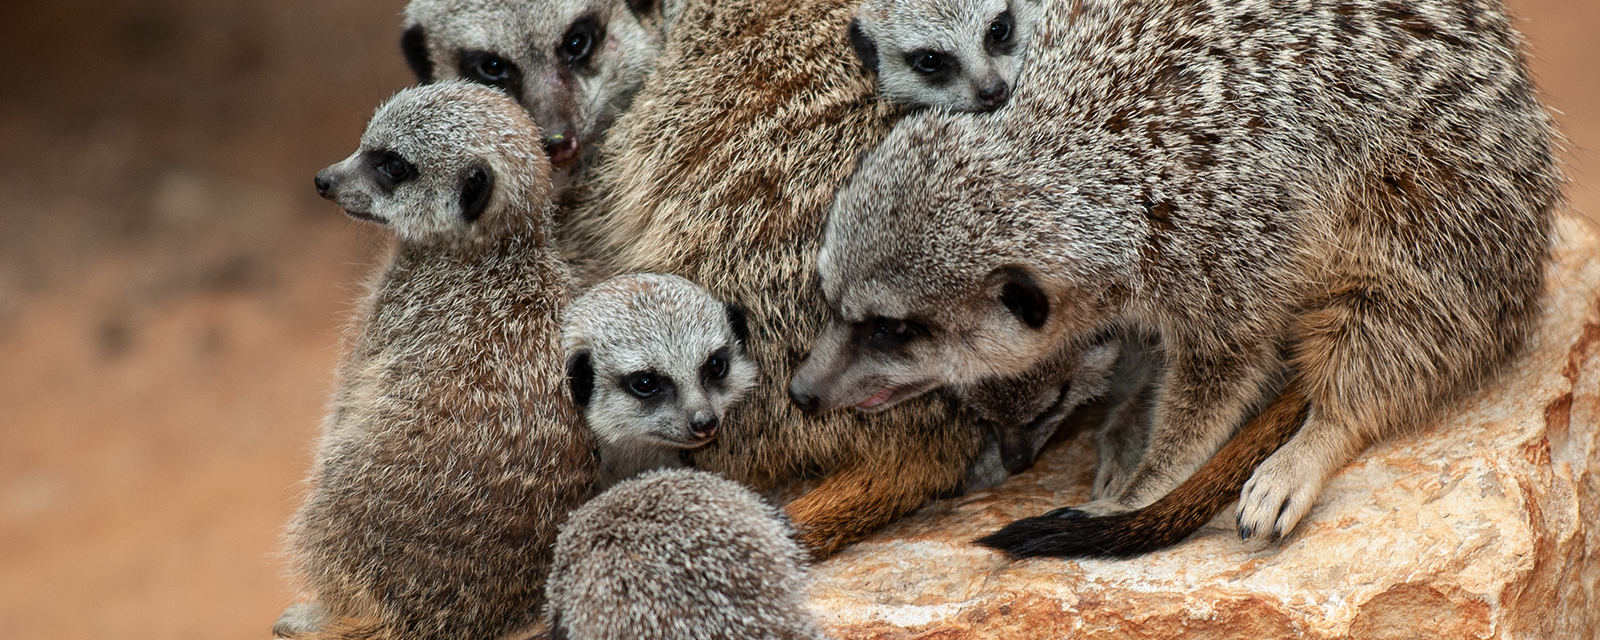 Meerkats gathered together in exhibit